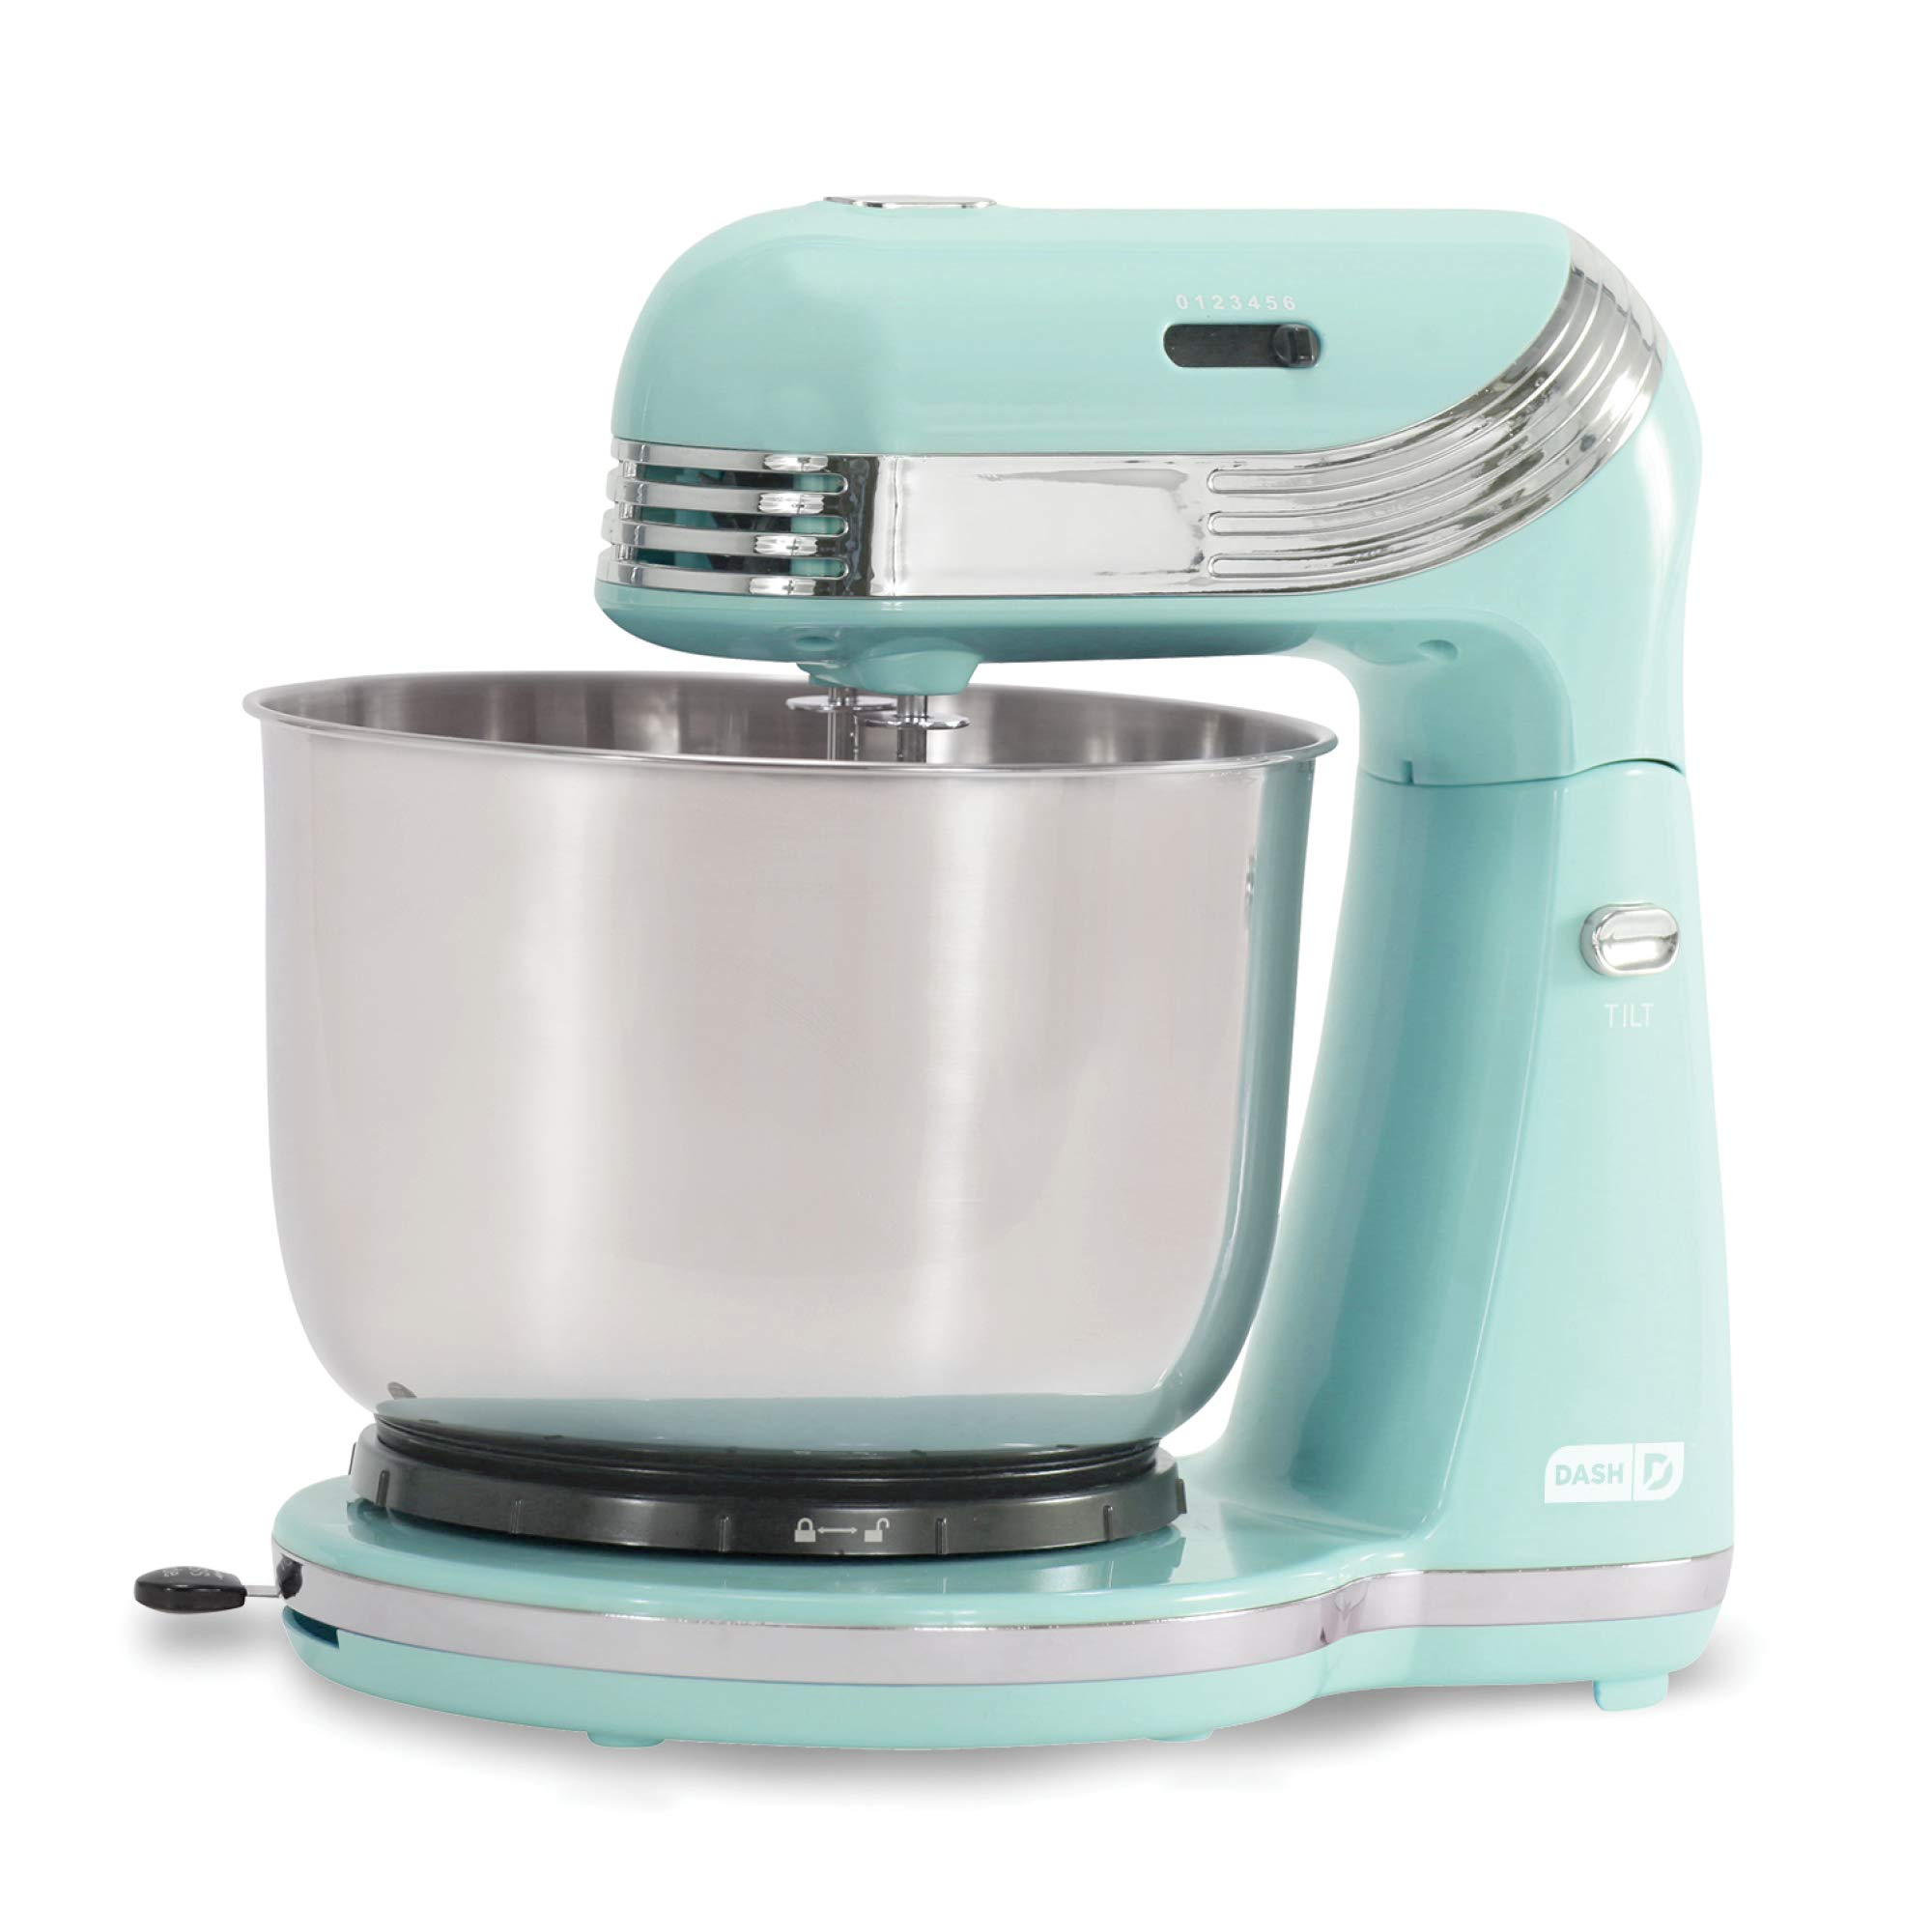 Dash Stand Mixer (Electric Mixer for Everyday Use): 6 Speed Stand Mixer with 3 qt Stainless Steel Mixing Bowl, Dough Hooks & Mixer Beaters for Dressings, Frosting, Meringues & More - Aqua by DASH